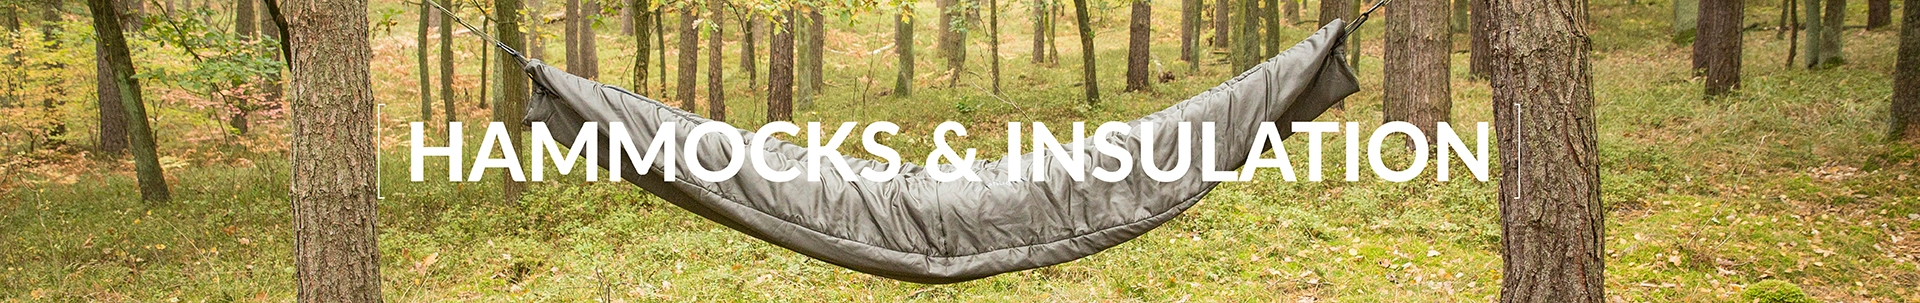 Hammocks and Insulation - Blankets